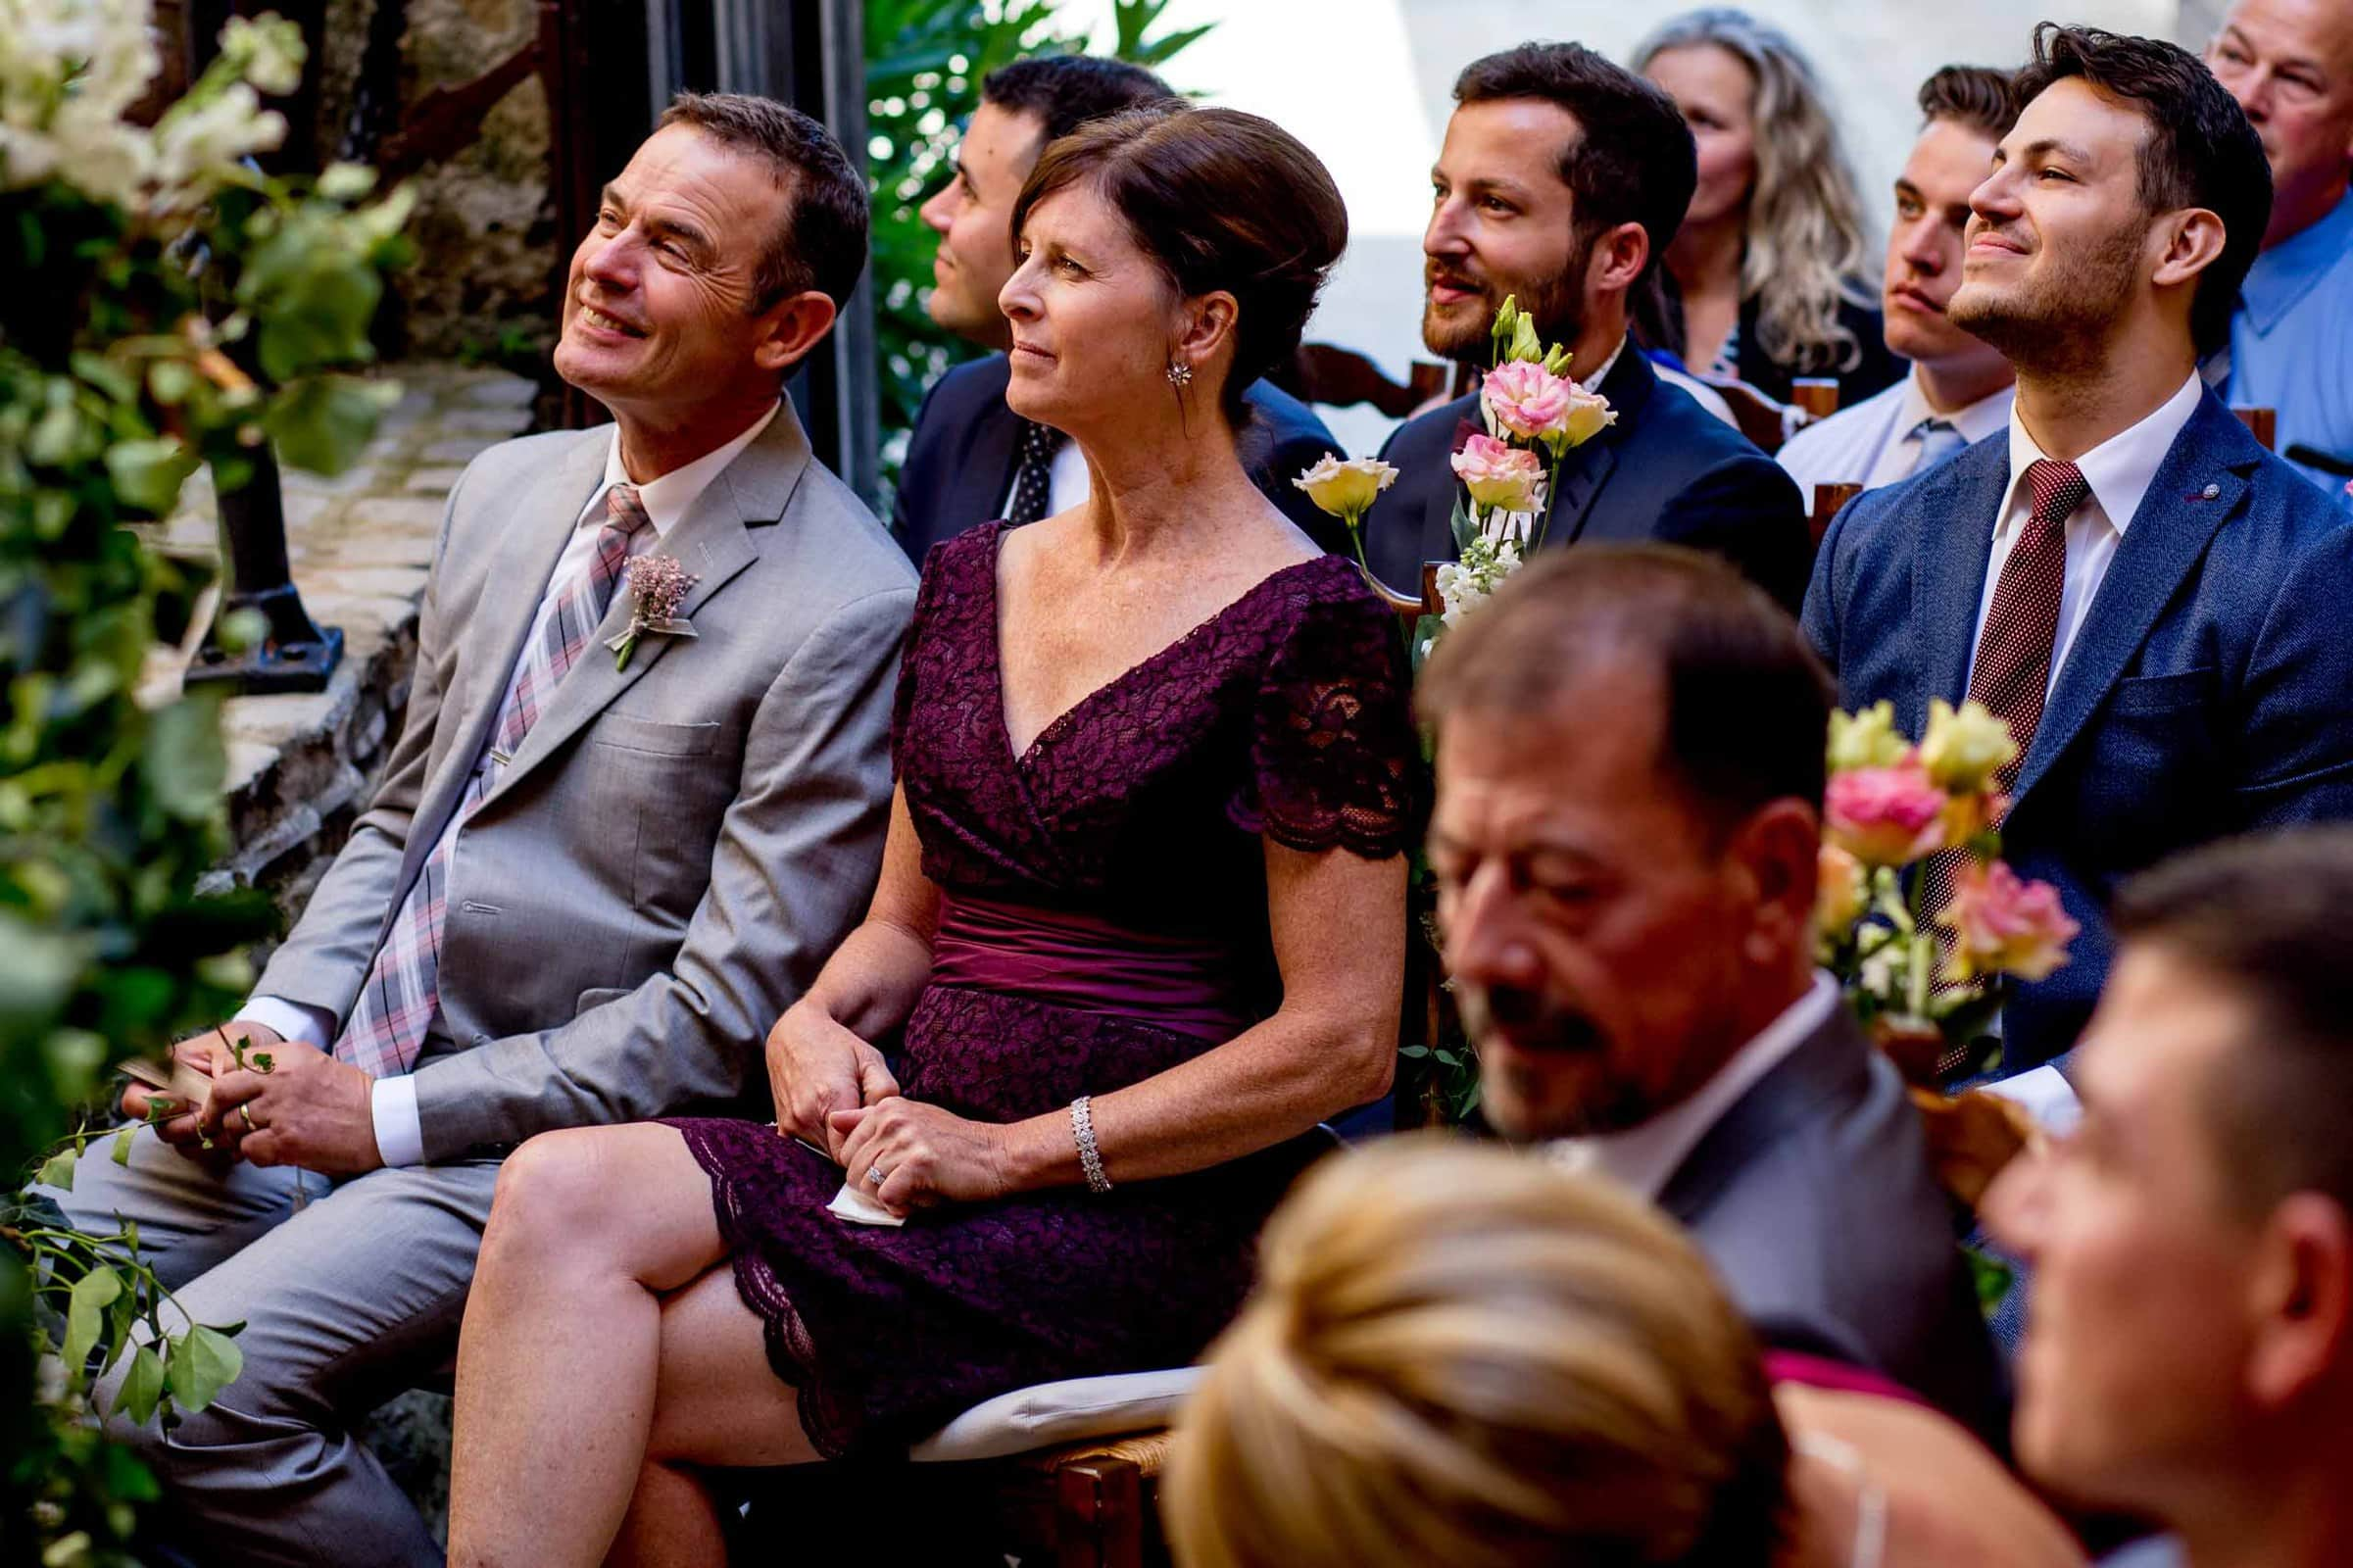 Parents of the bride seated during a Chateau Zen wedding ceremony in the South of France near Montepelier.